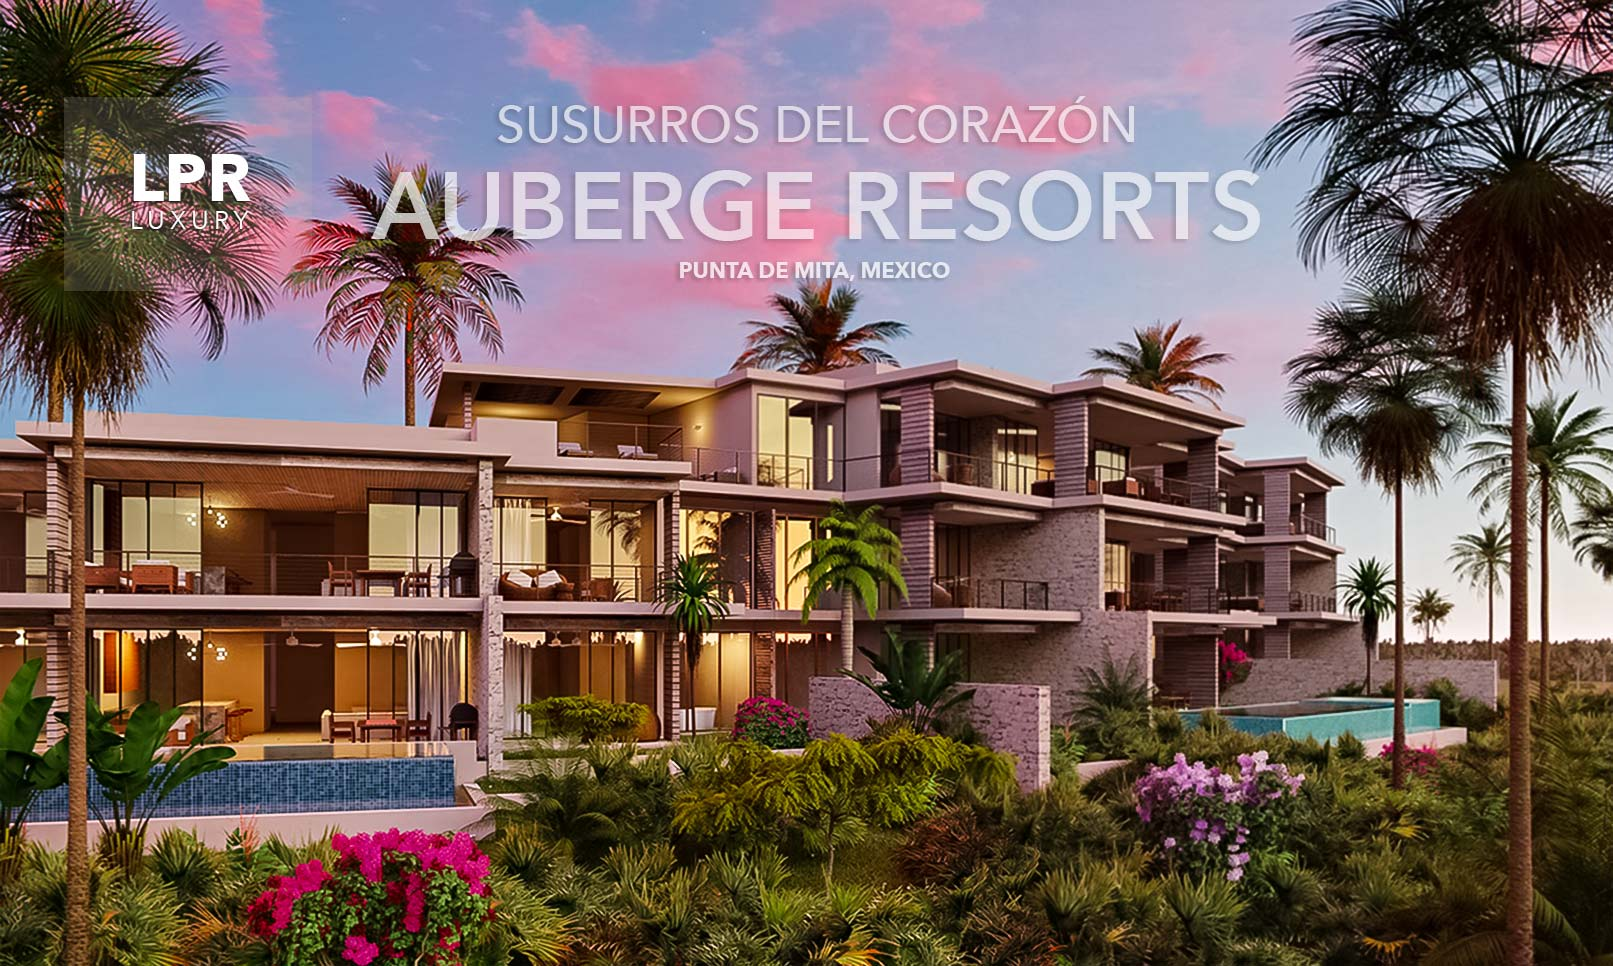 Auberge Resorts Punta de Mita Luxury VIllas, Riviera Nayarit, Mexico